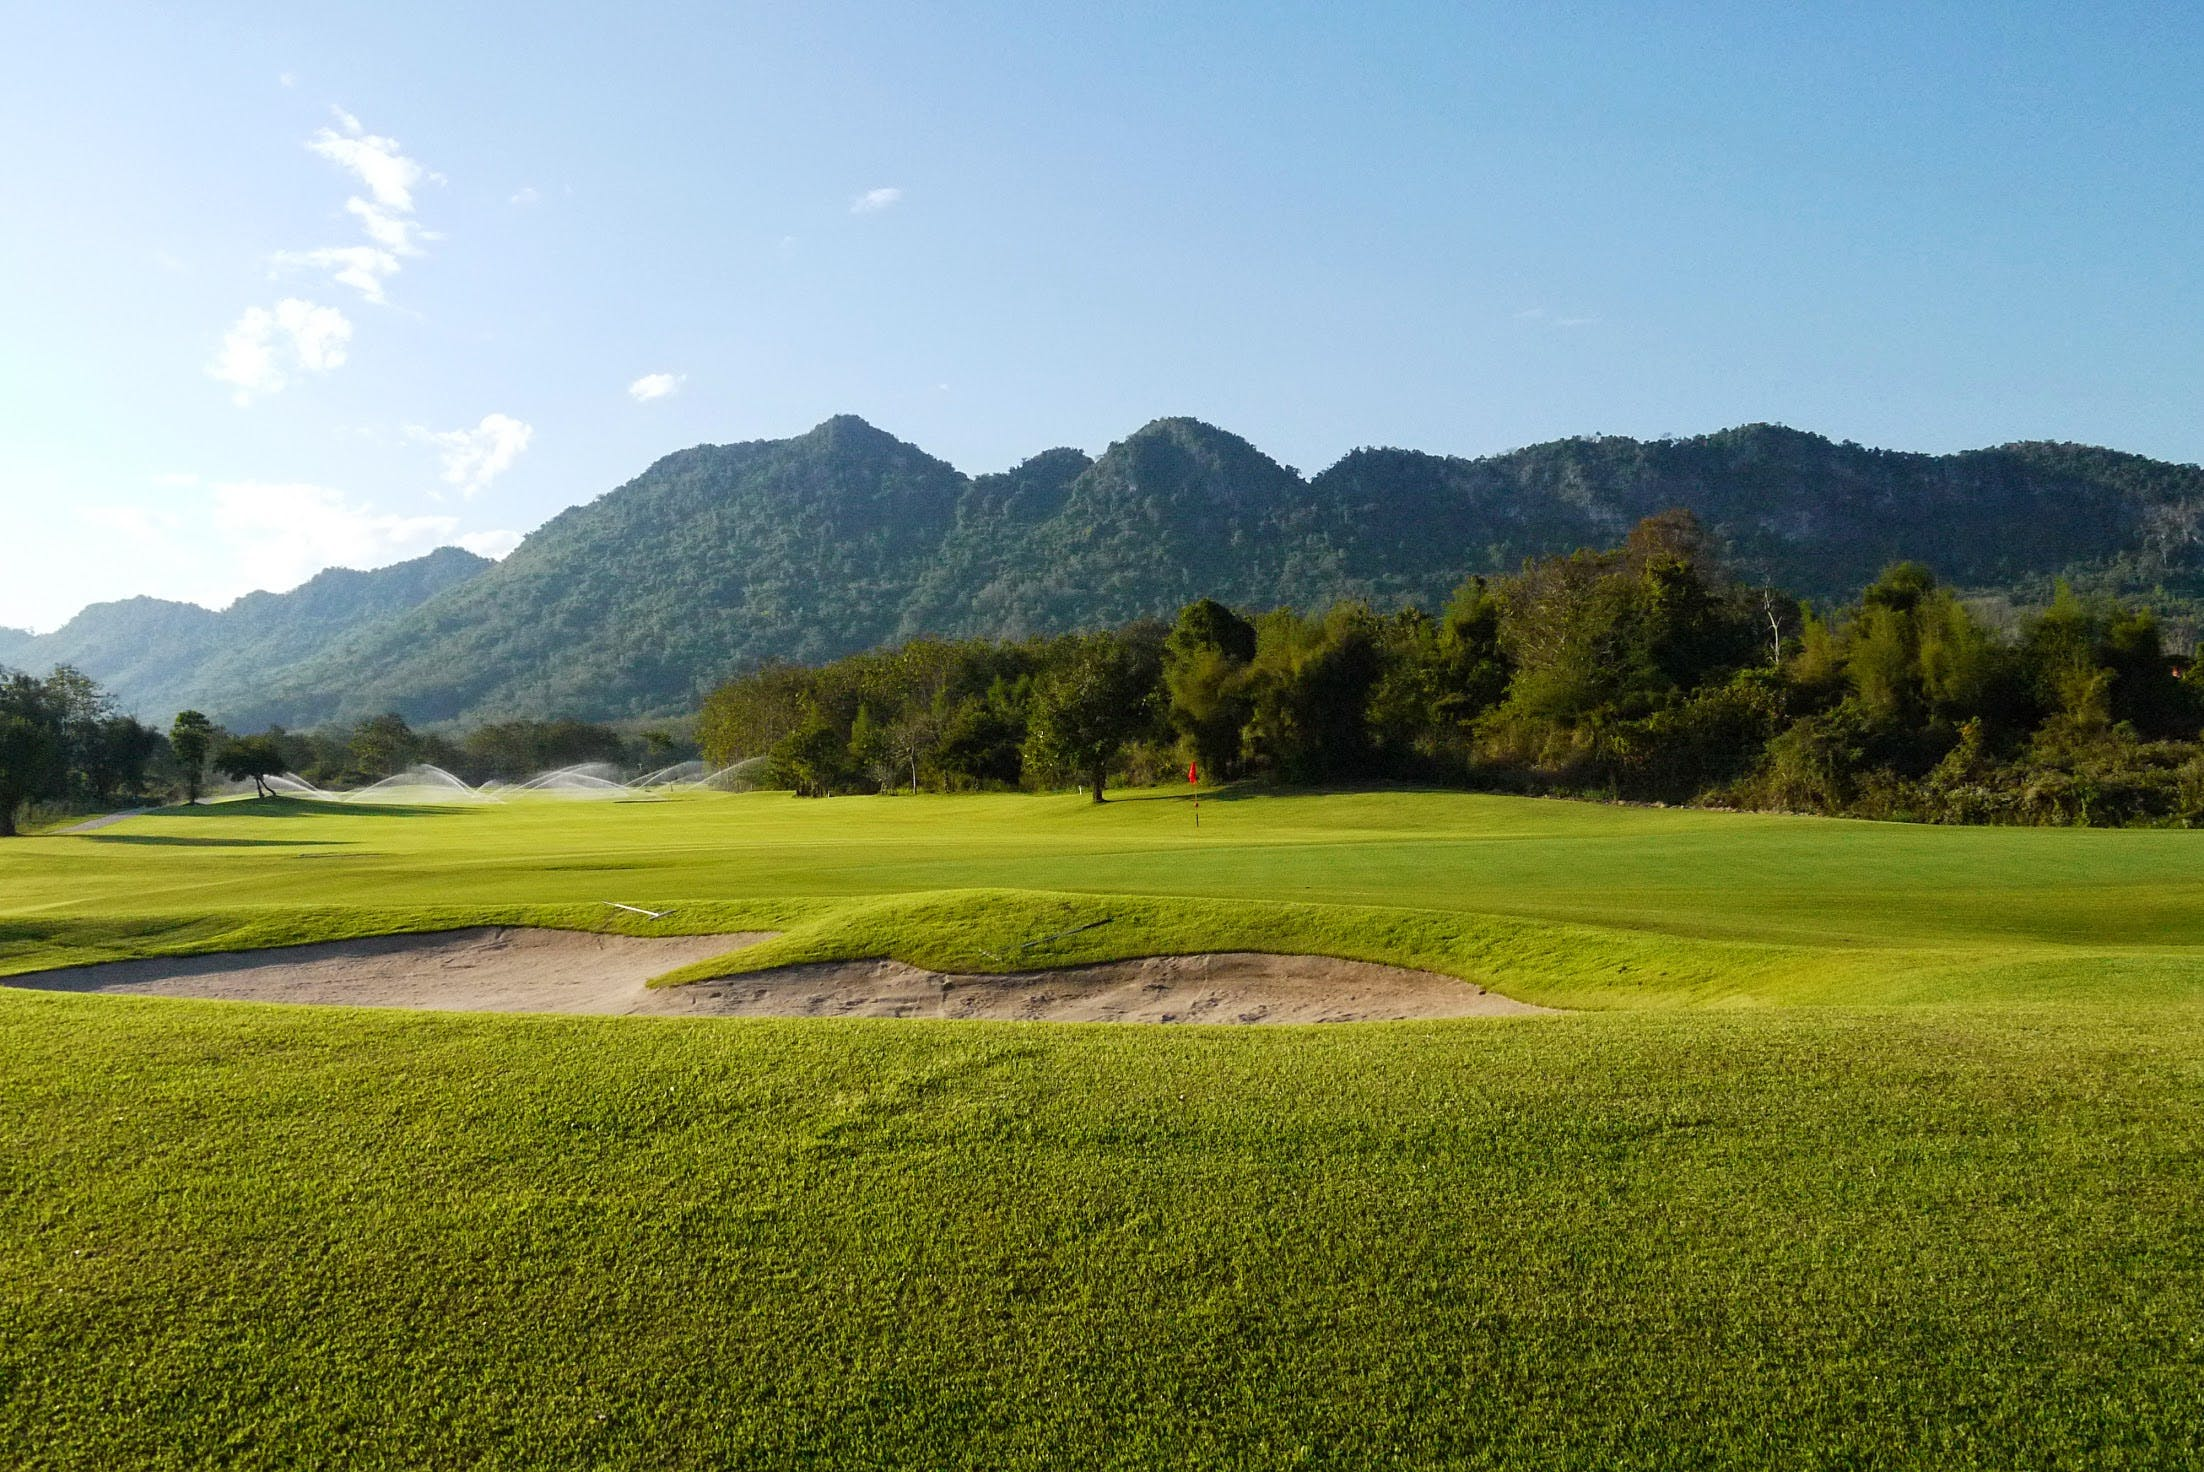 Luang Prabang golf course views